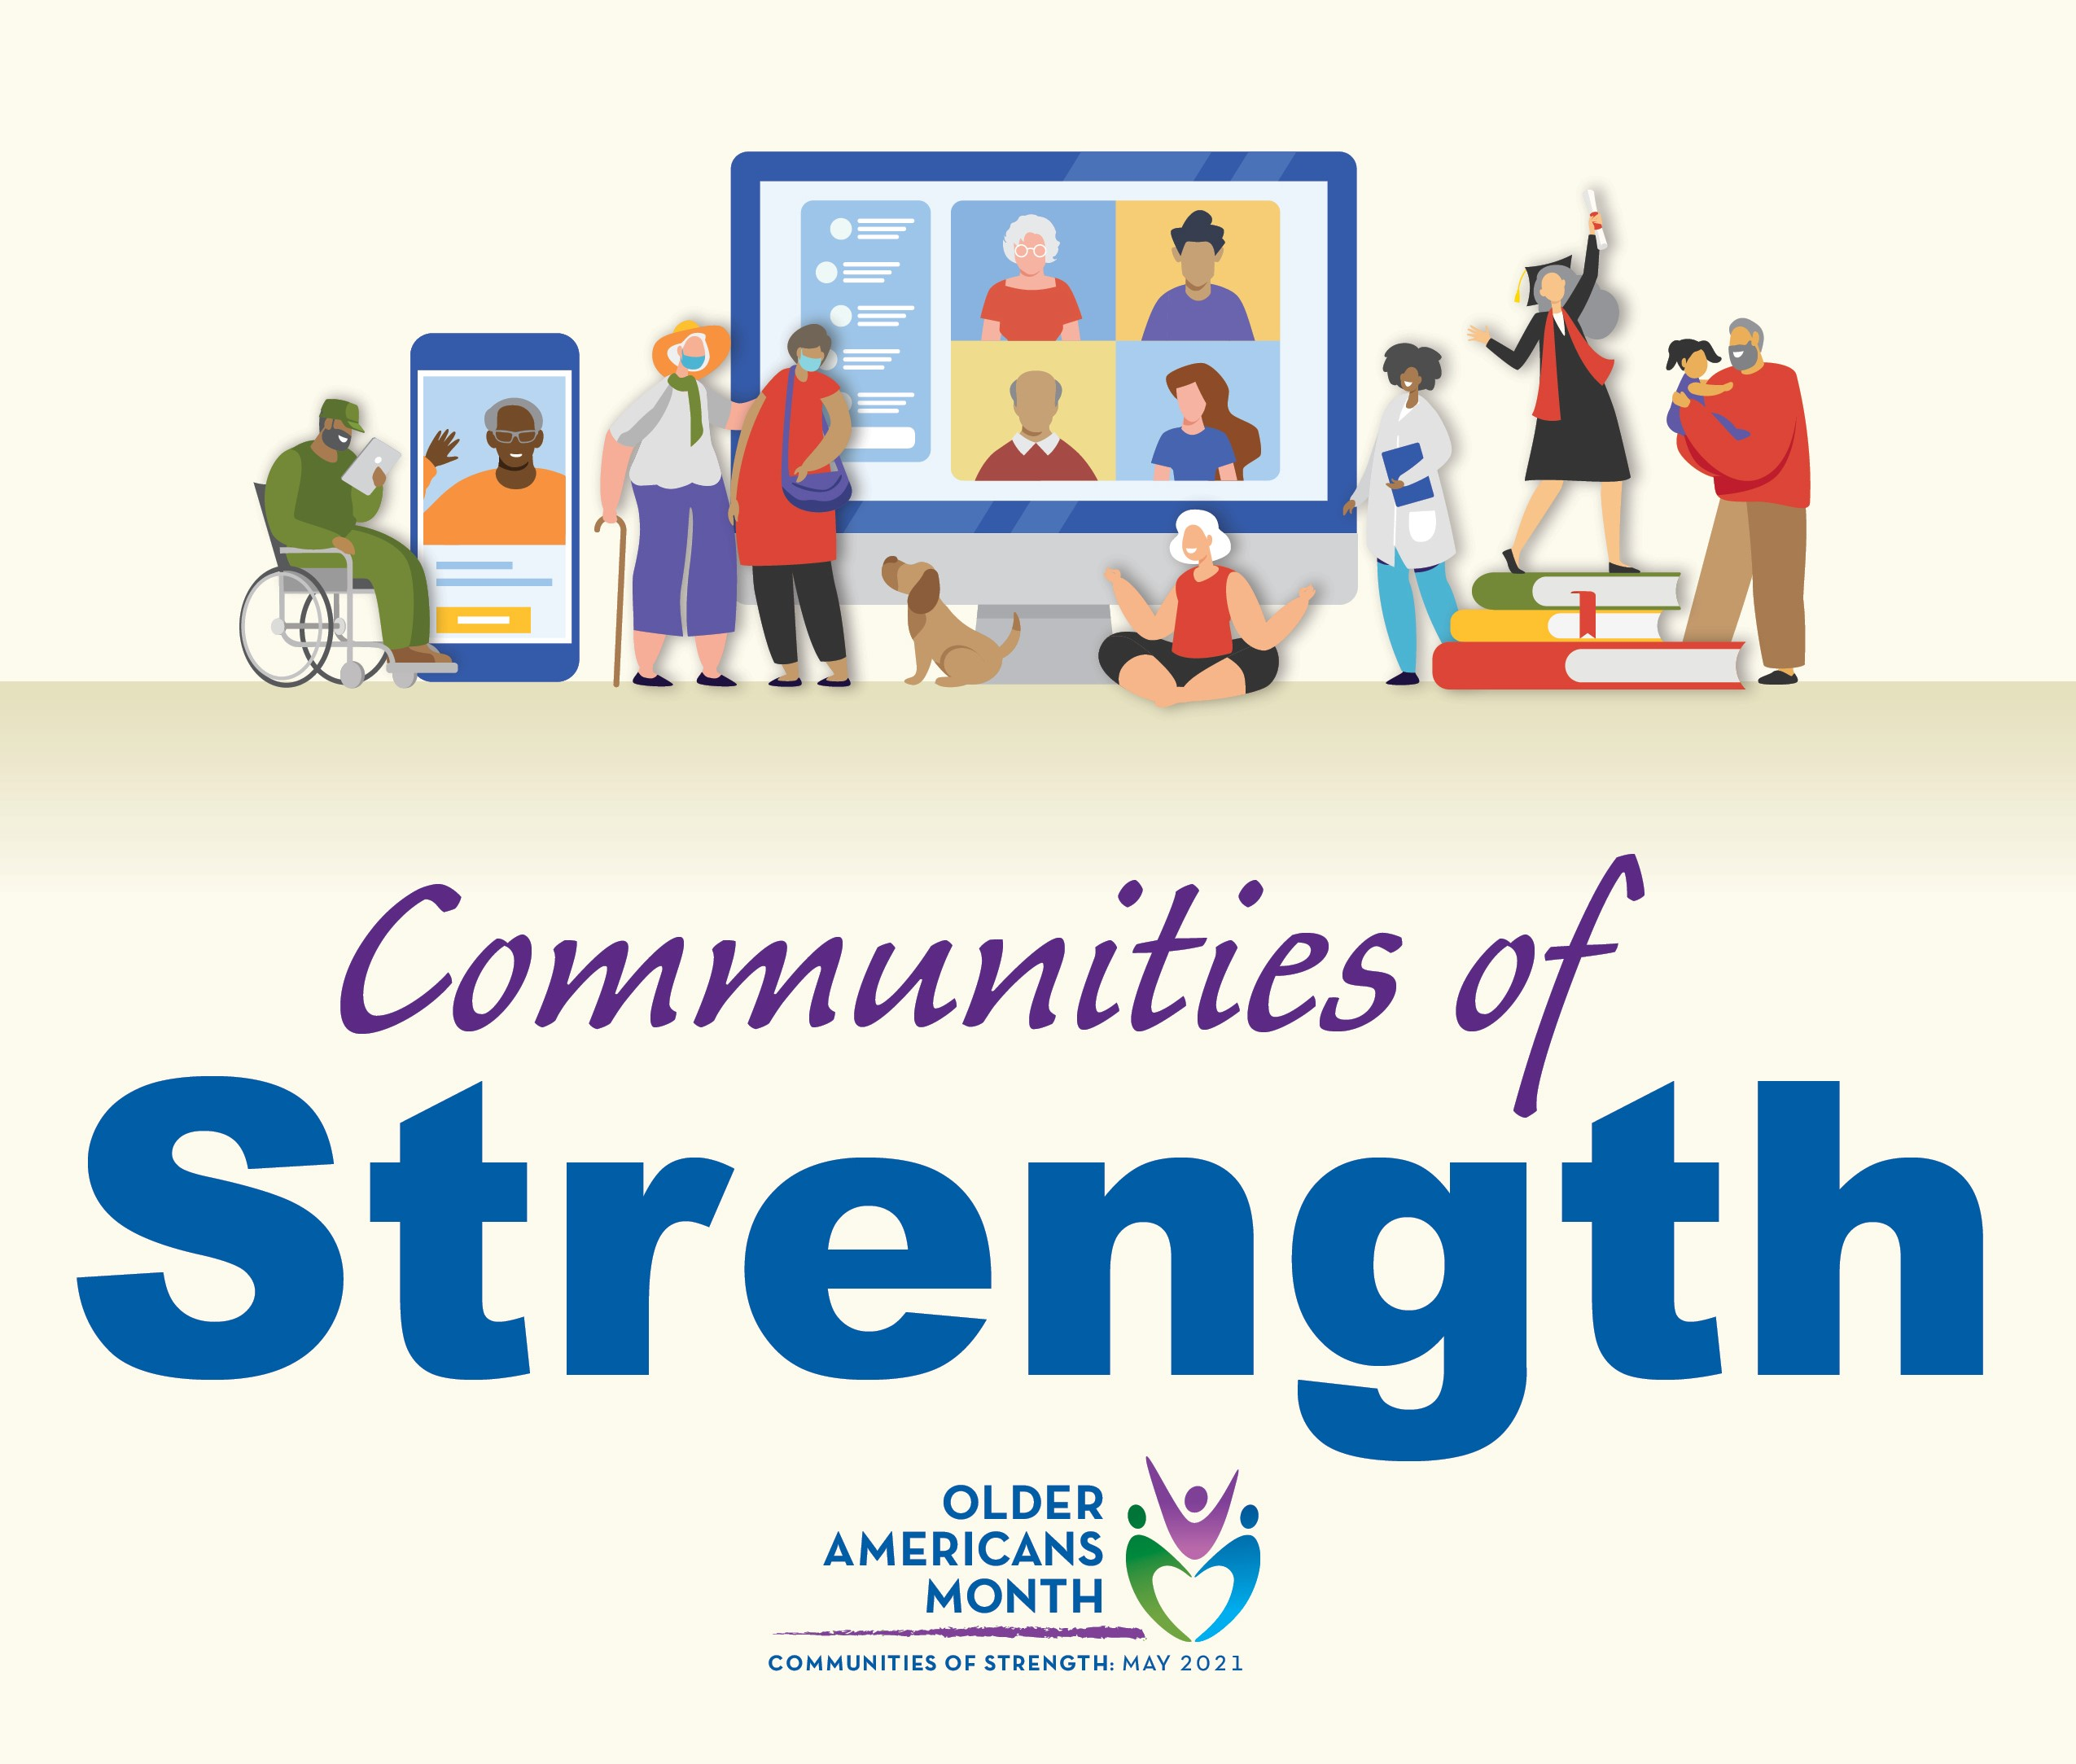 Header Graphic: Communities of Strength, Older Americans Month, May 2021